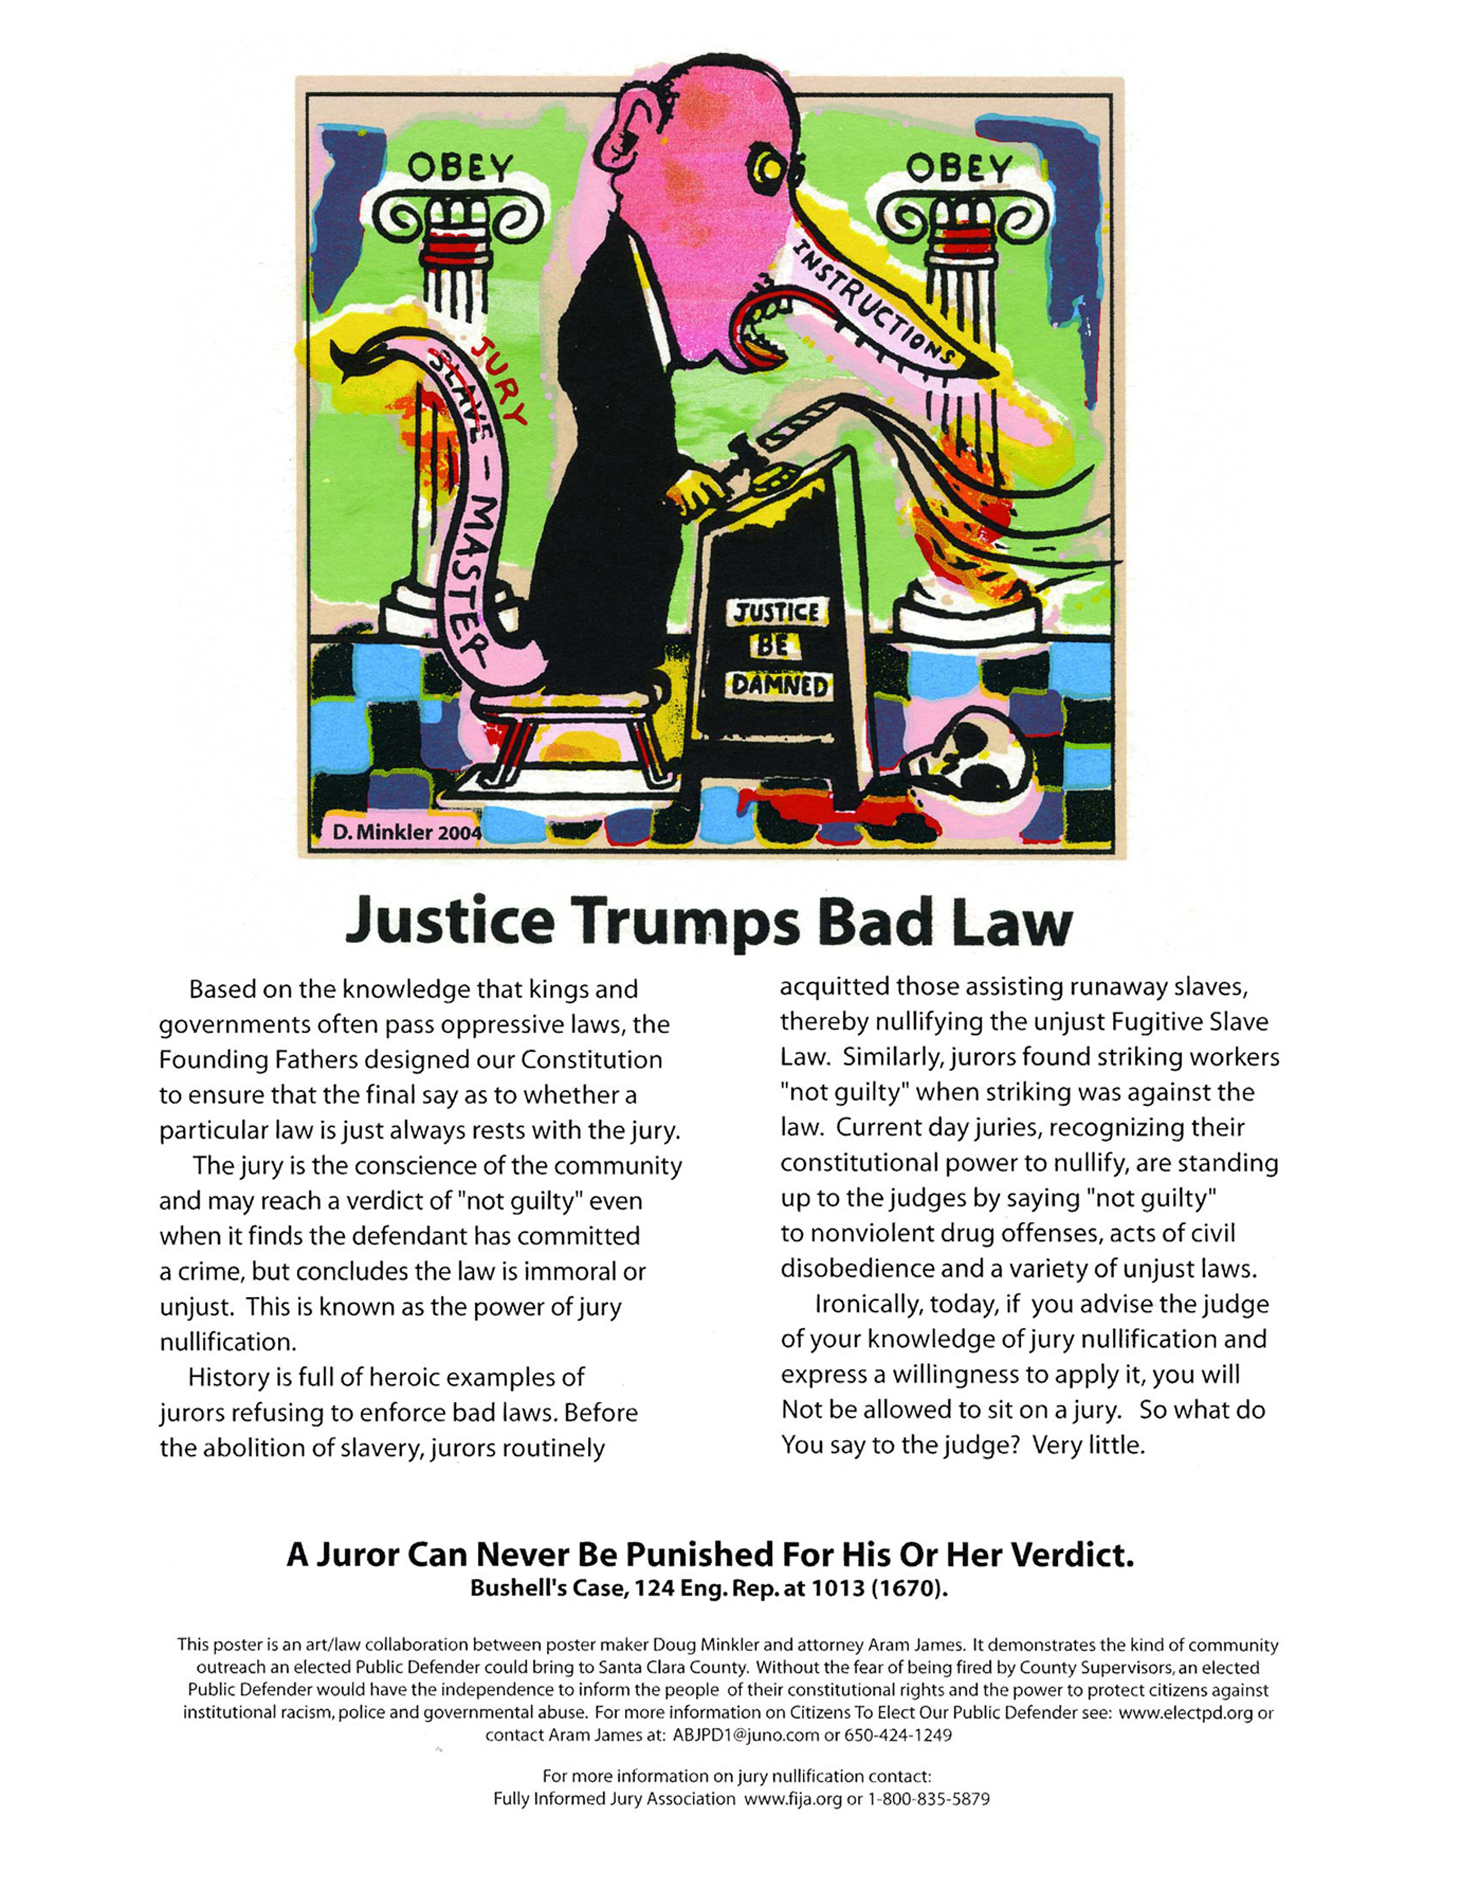 Justice Trumps Bad Law, v.2